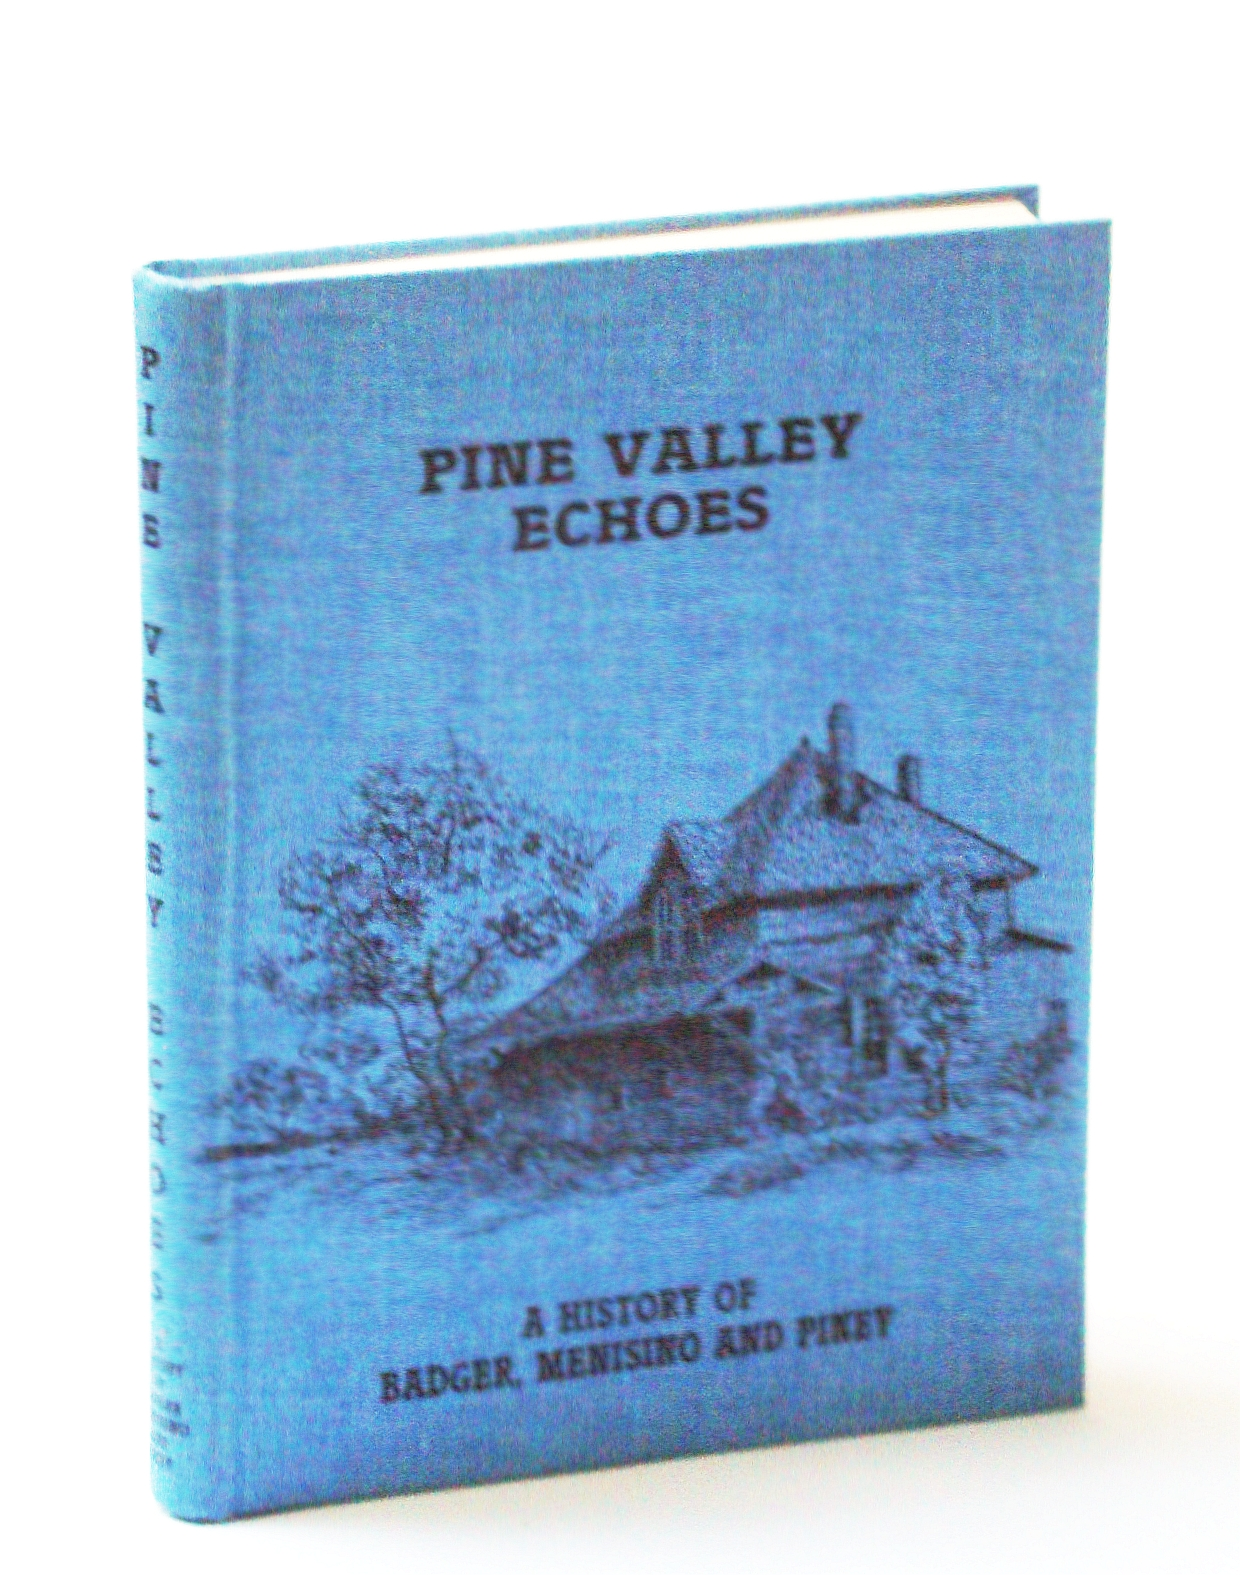 Image for Pine Valley Echoes - A History of Badger, Menisino and Piney, Manitoba